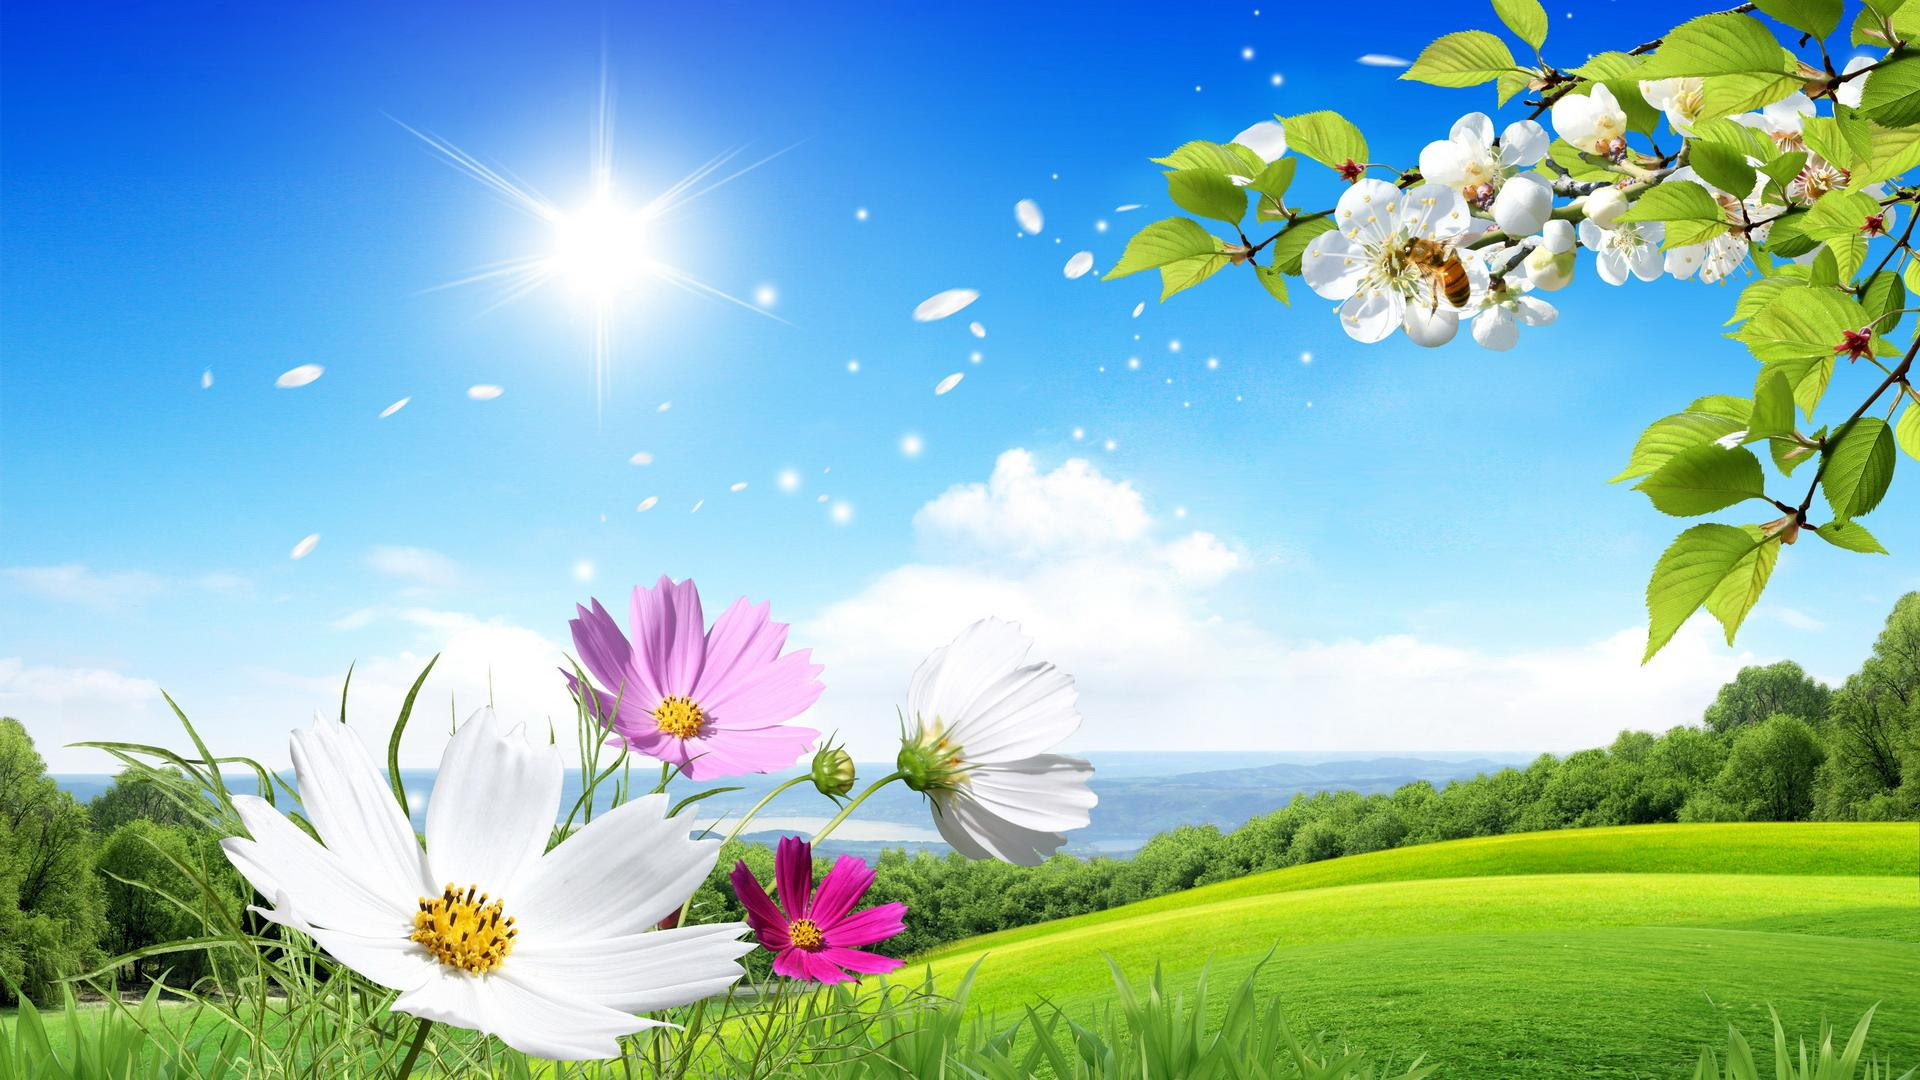 Pretty Summer Screensavers 21535 2560x1600 px